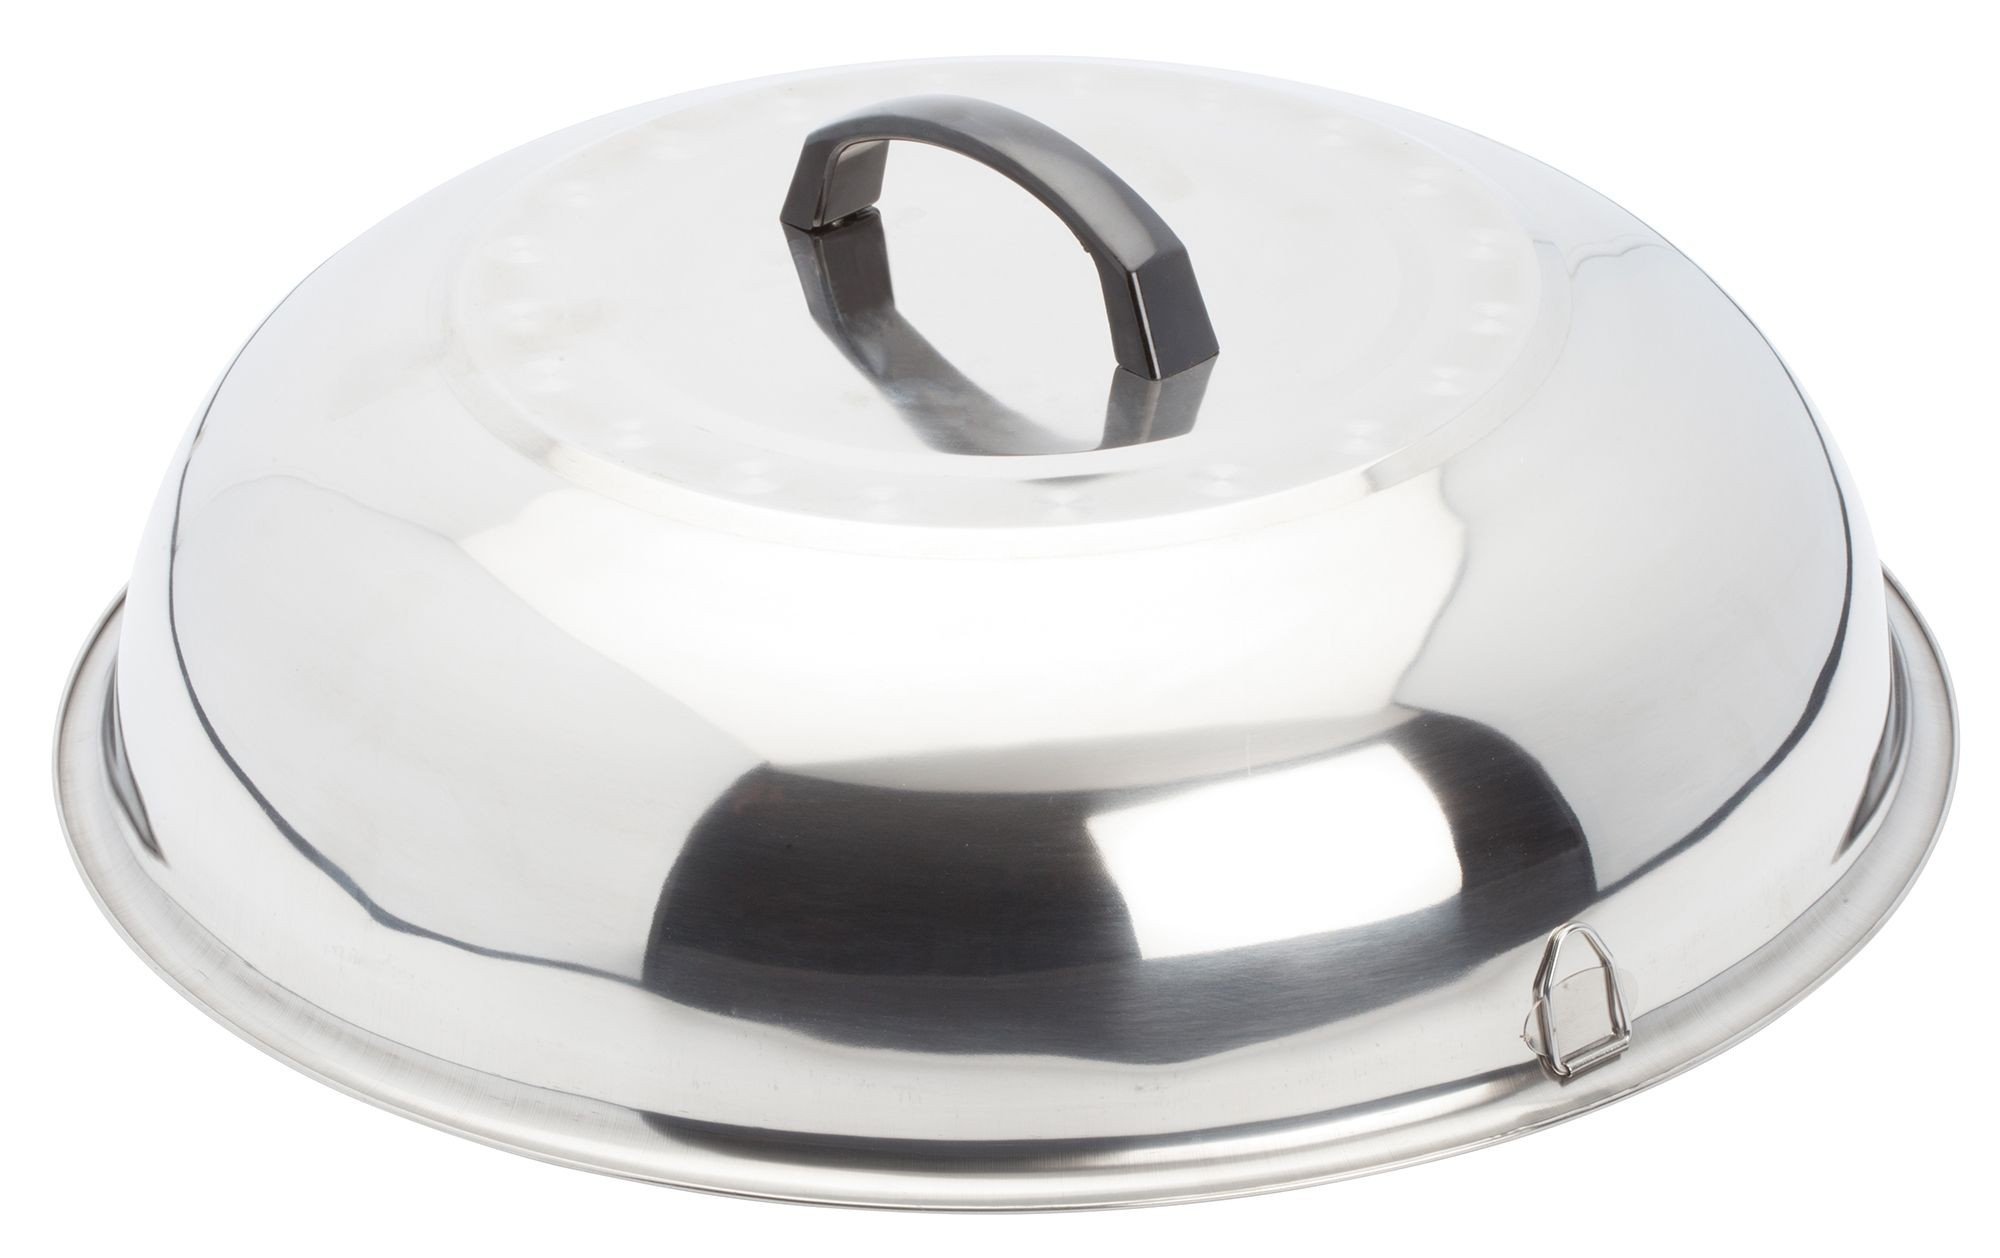 Winco WKCS-15 Stainless Steel Wok Cover 15-3/8""